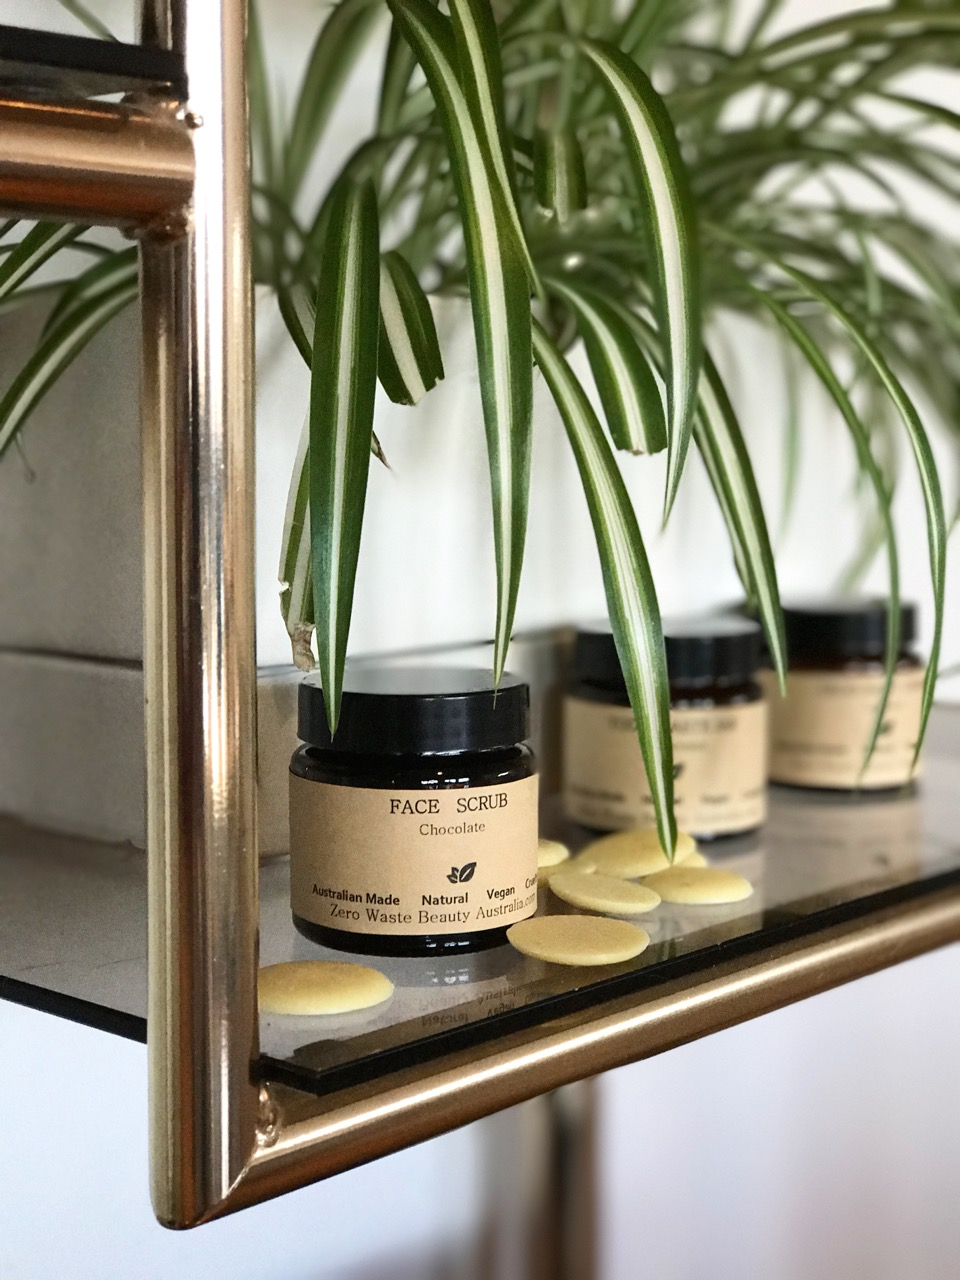 Zero Waste Beauty Australia makes cosmetic products that are natural, cruelty-free, vegan, eco-friendly and handmade in Melbourne.